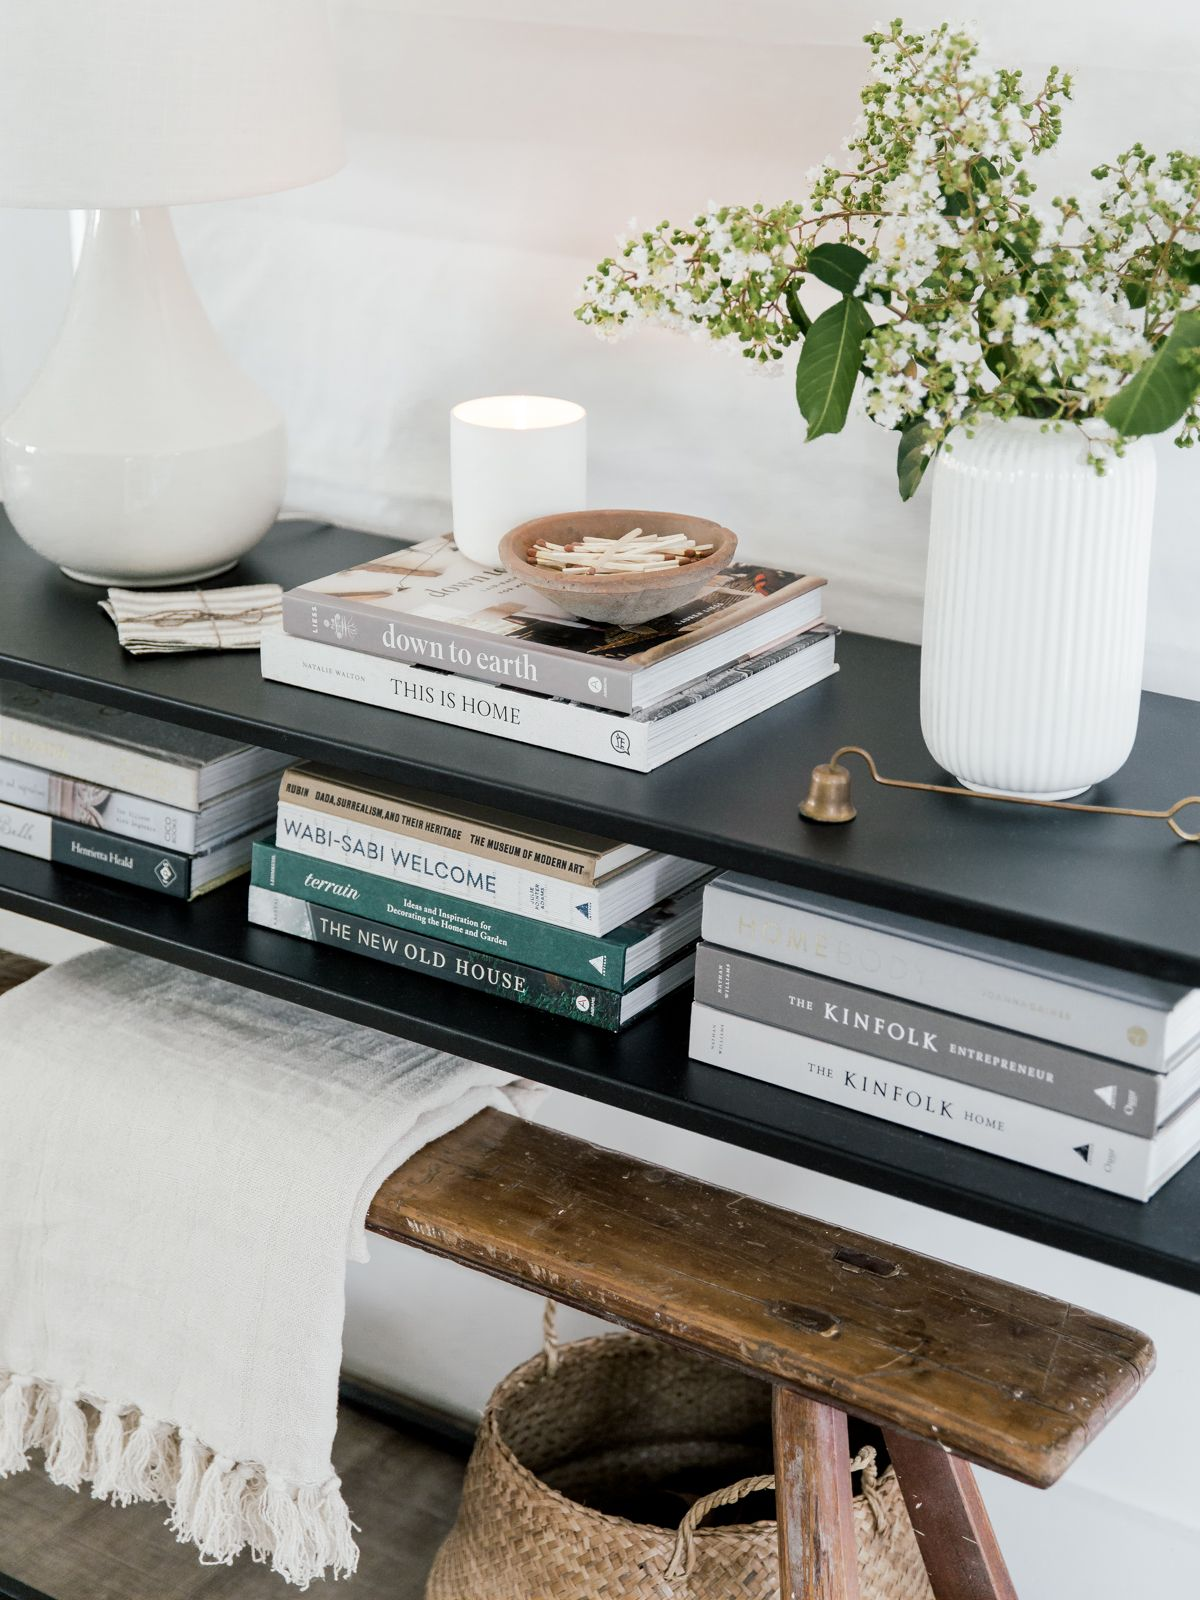 Our Small Entry Neutral Coffee Table Books Coffee Table Books Decor Coffee Table Coffee Table Books [ 1600 x 1200 Pixel ]